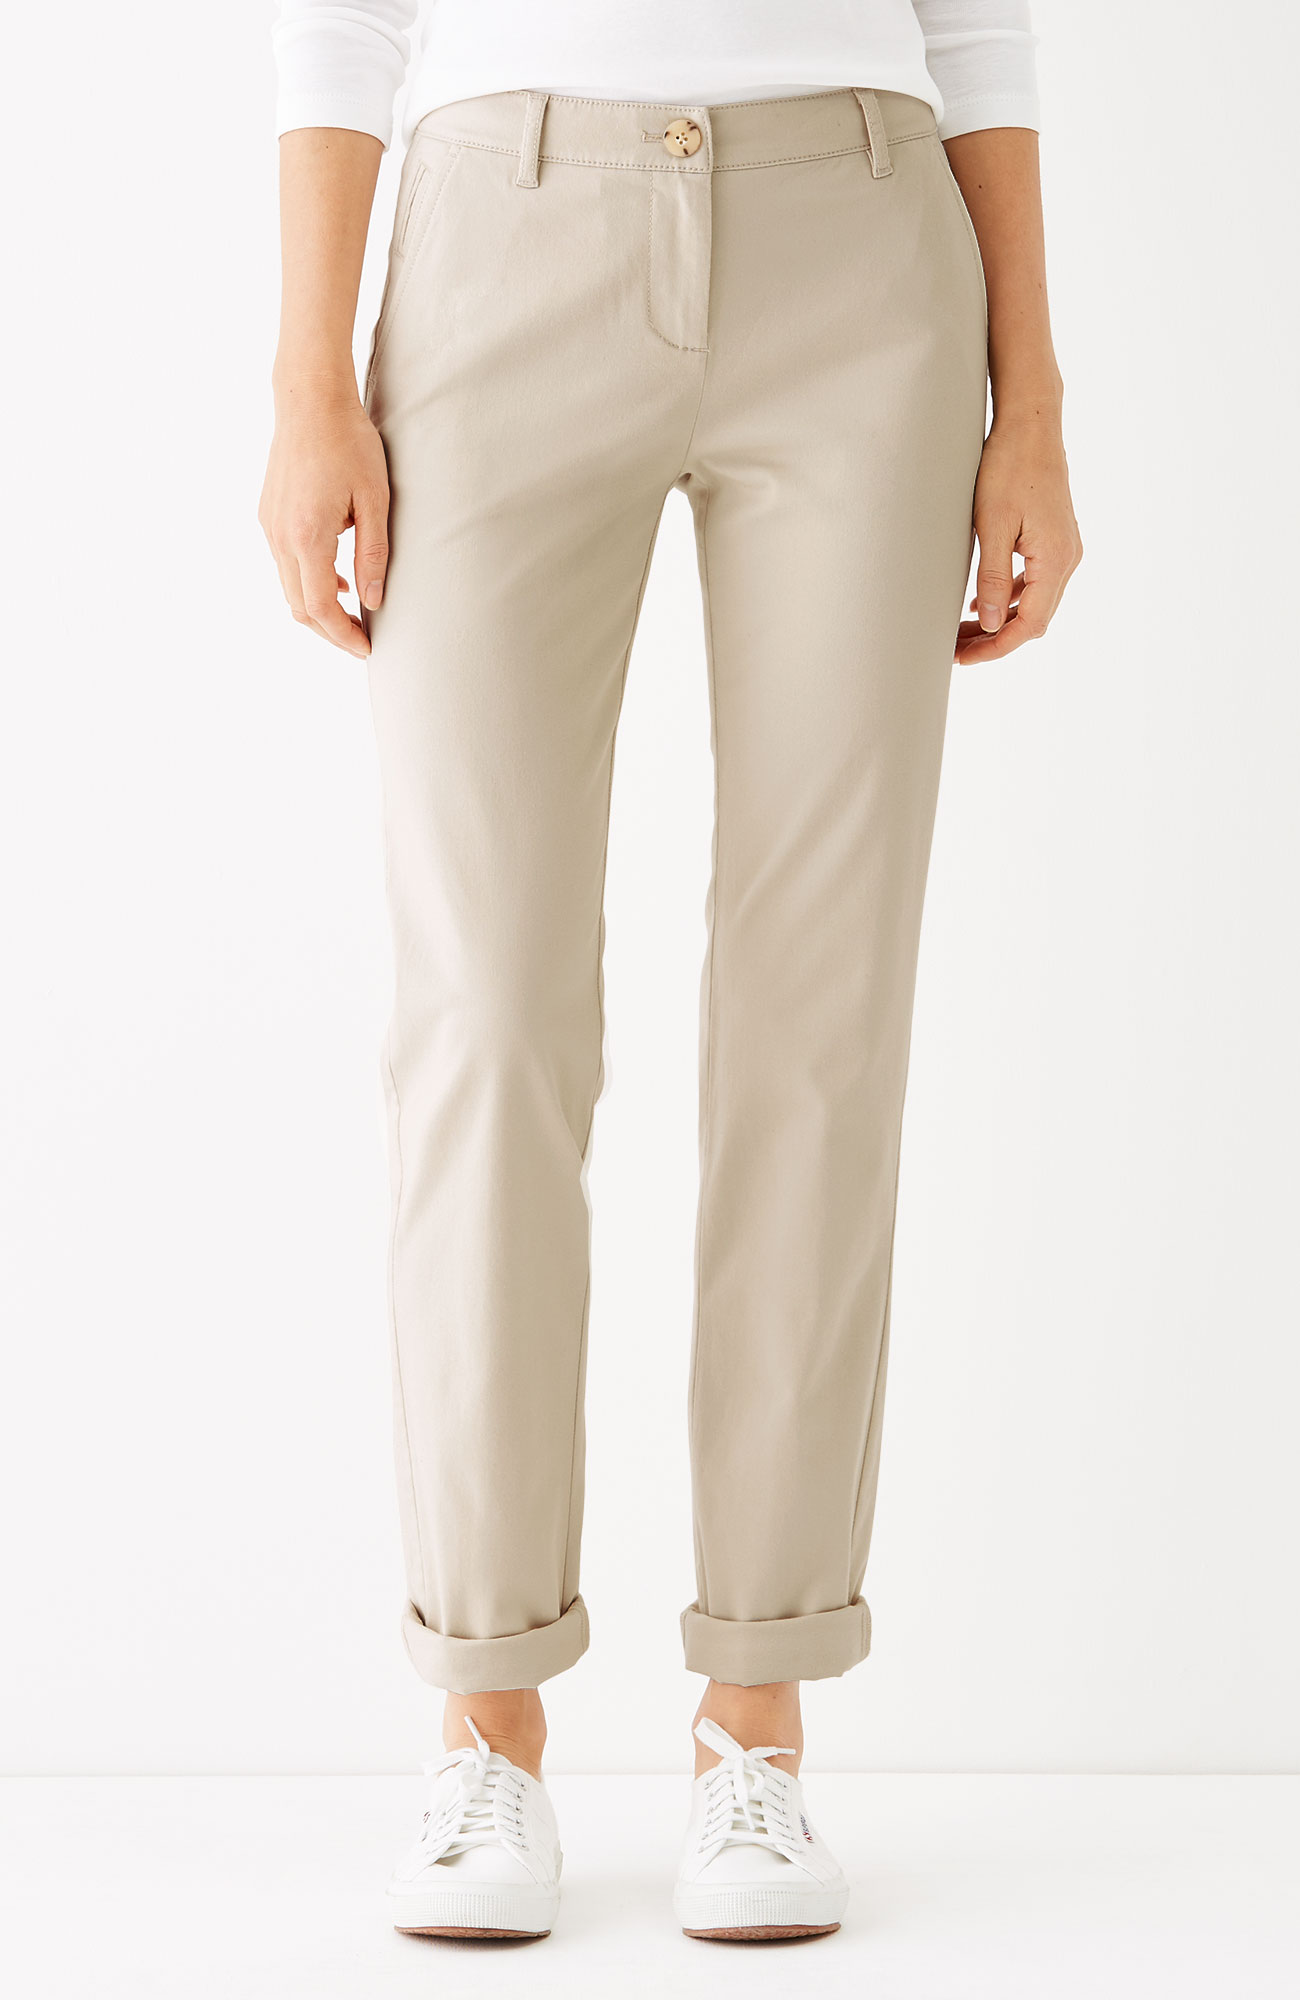 brushed-twill slim boyfriend pants